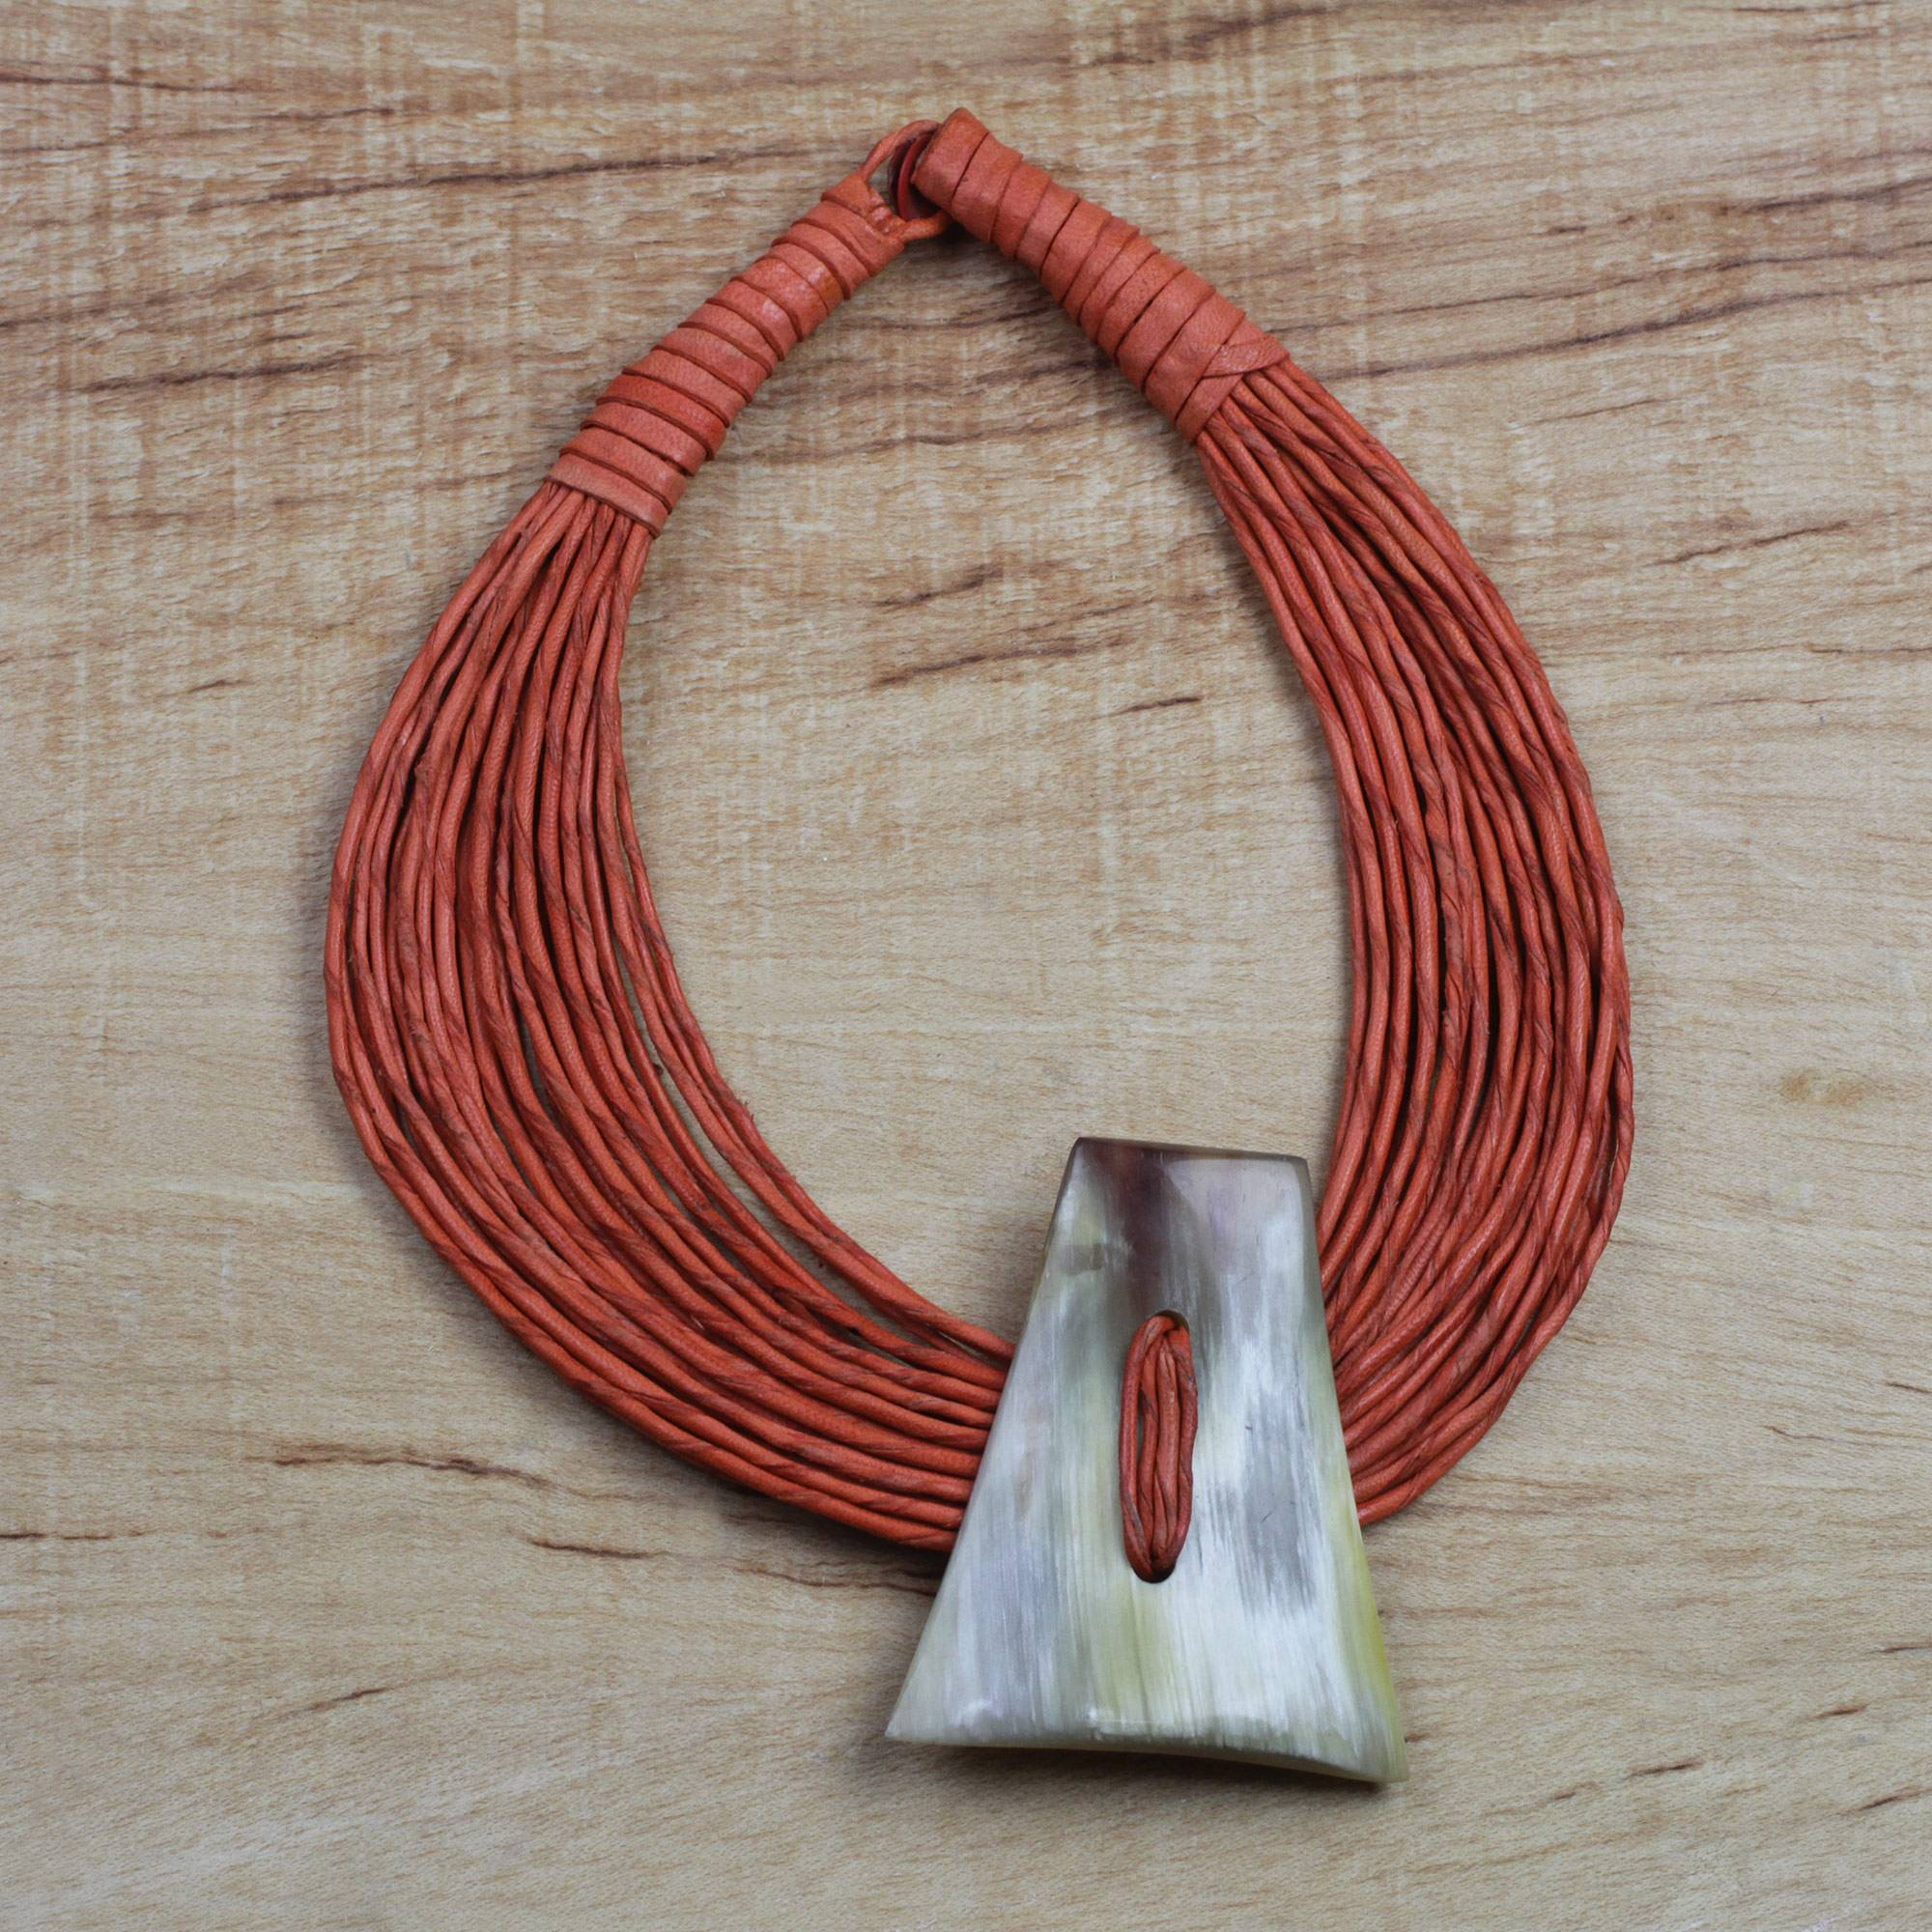 Matching Accessories 'Laami' Ghanaian Orange Leather and Bone Statement Cord Necklace